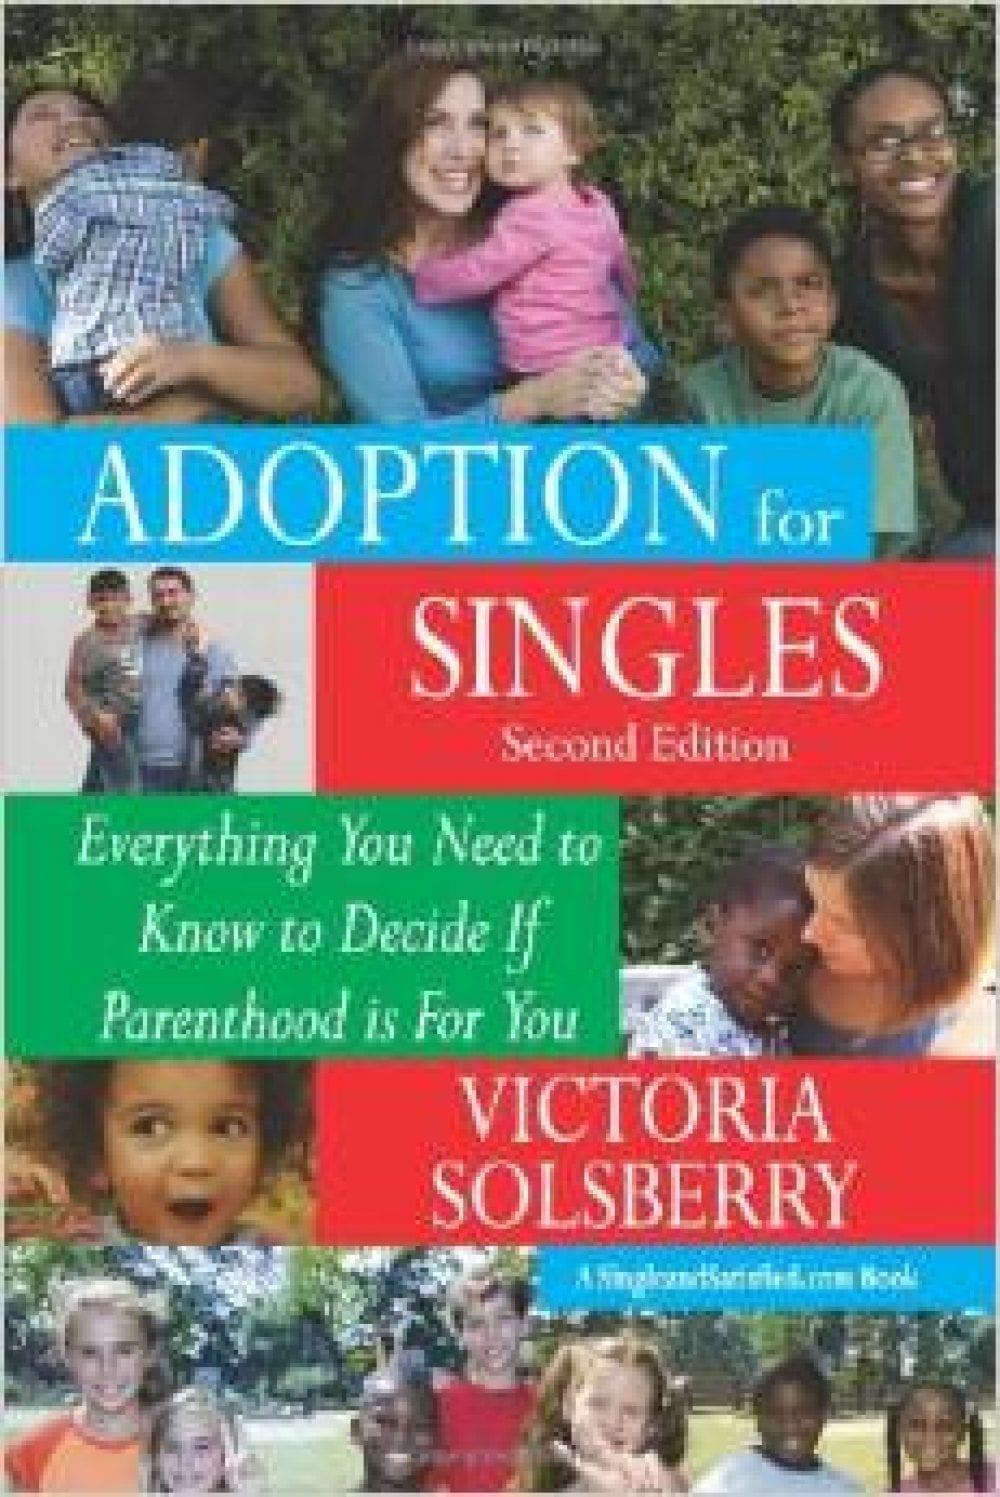 Adoption-for-Singles-Second-Edition-Everything-You-Need-to-Know-to-Decide-if-Parenthood-is-for-You